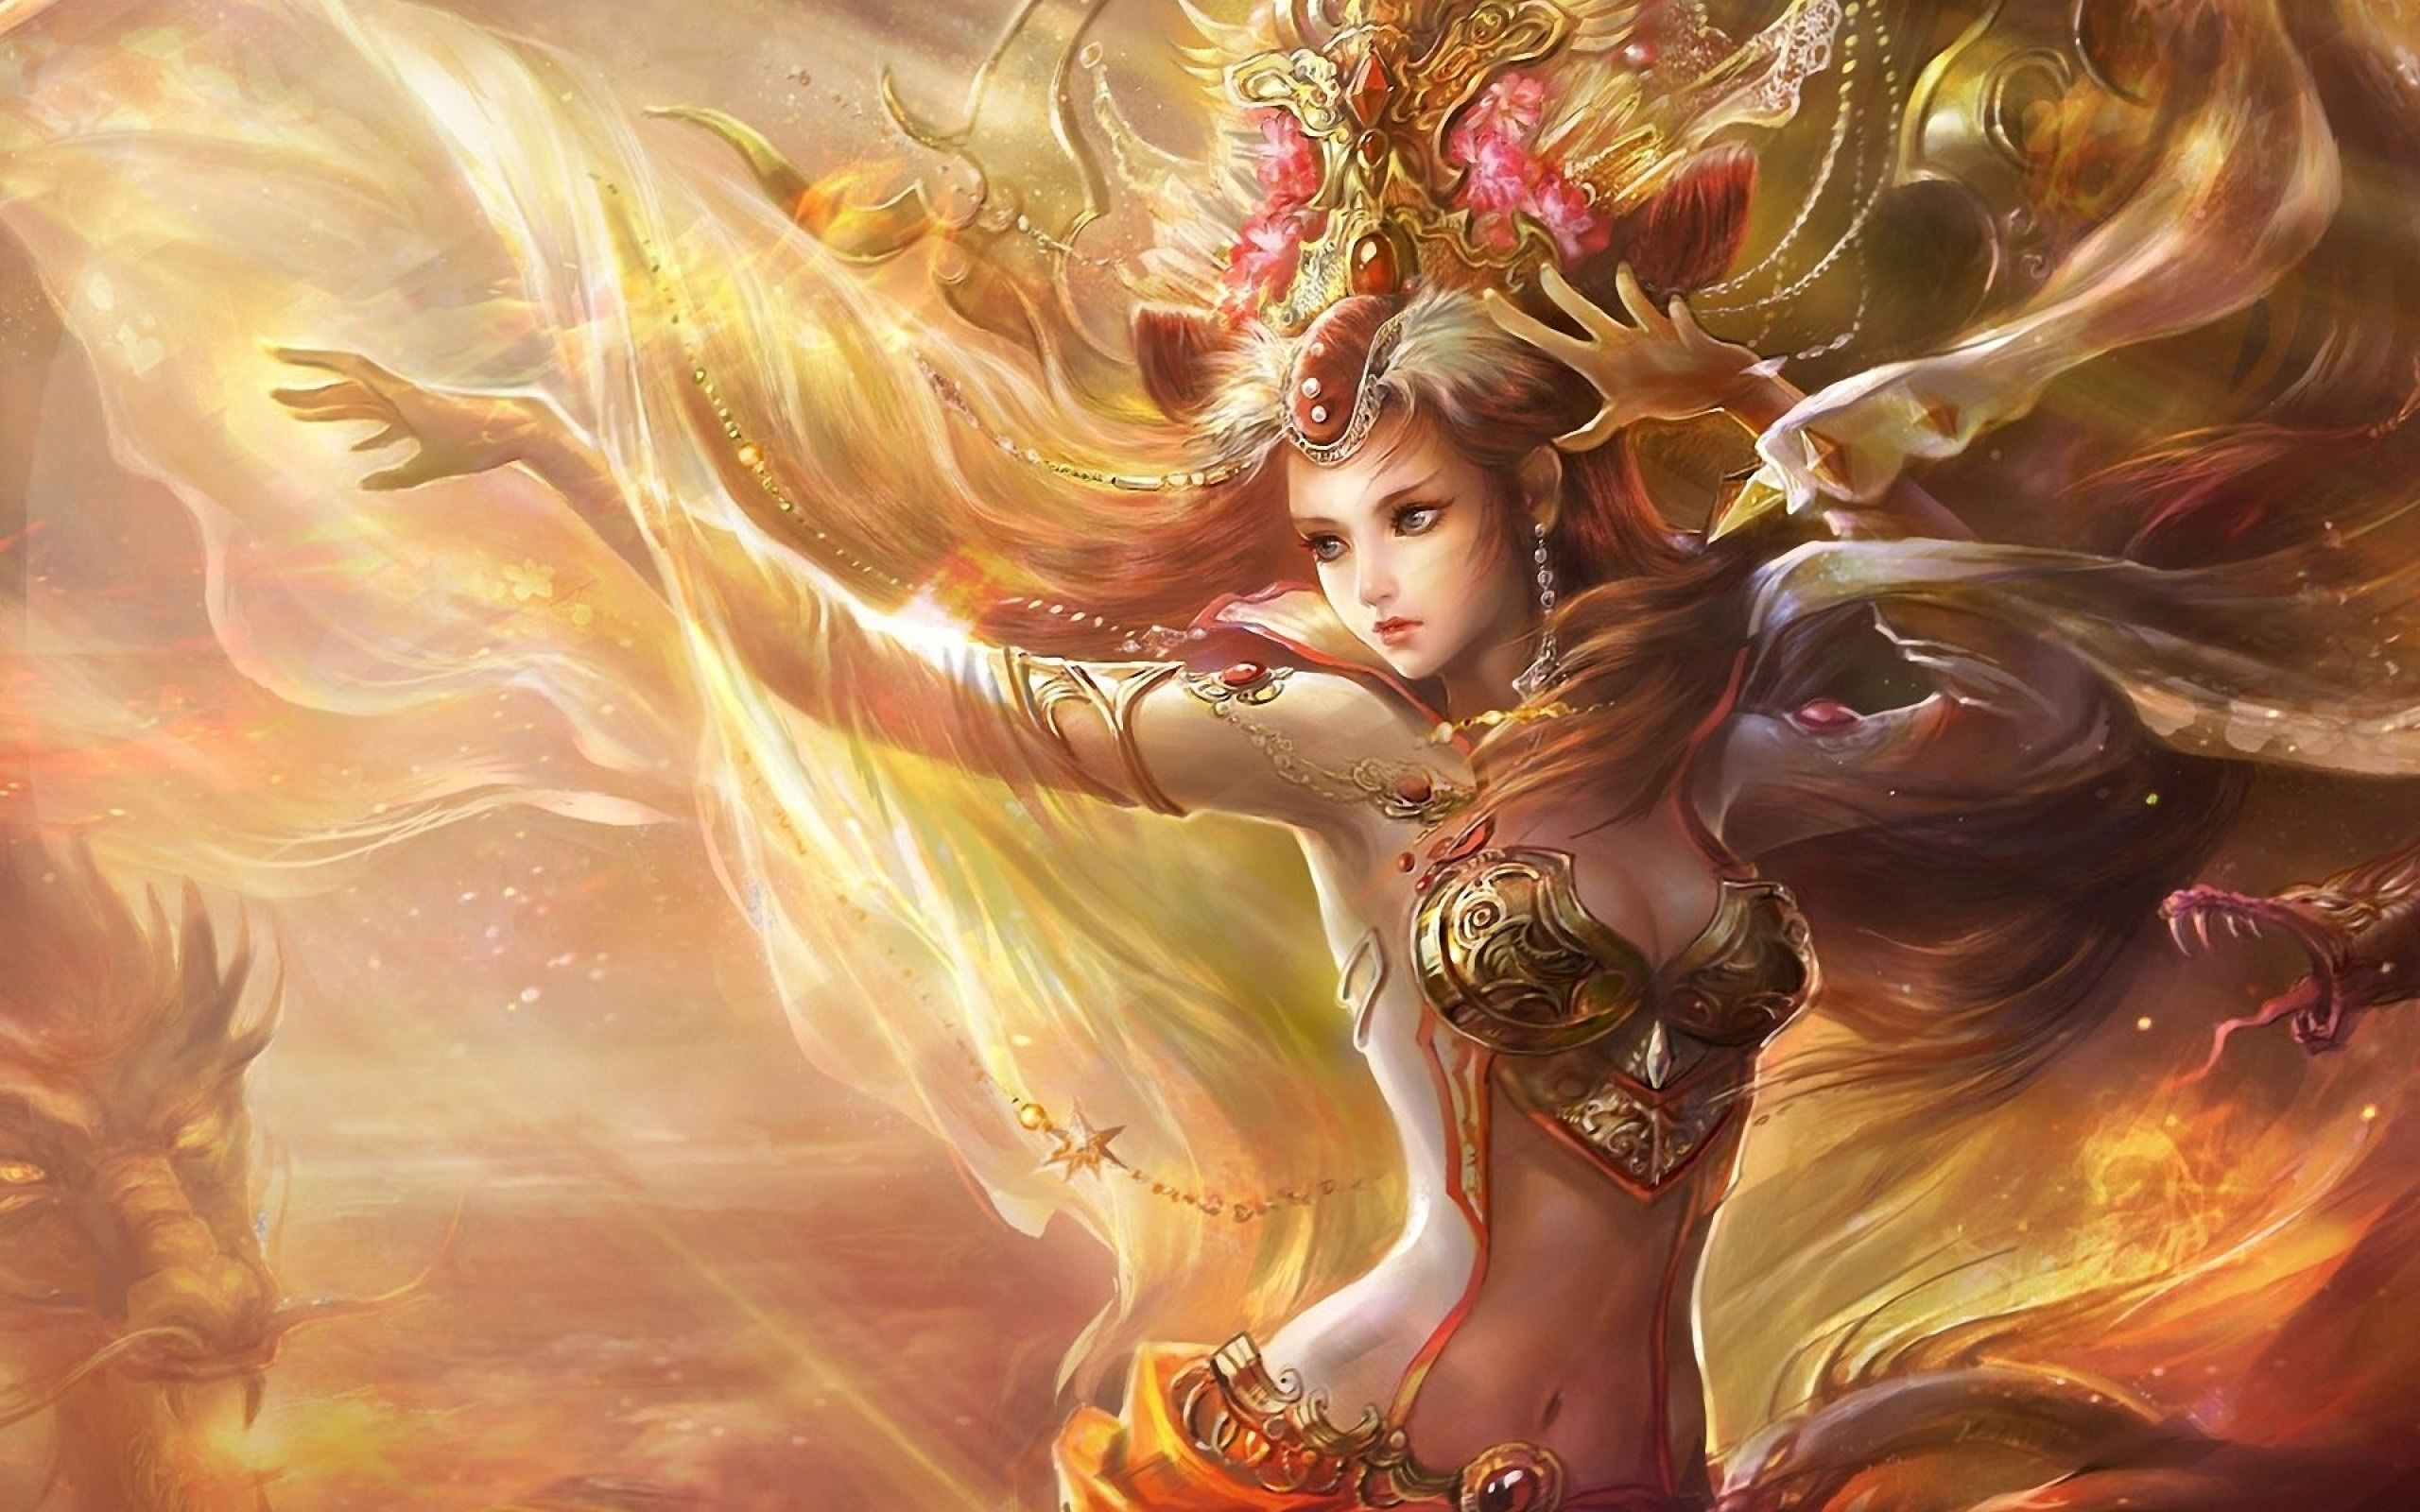 Women Fantasy Art Artwork HD Wallpaper ImageBankbiz 2560x1600